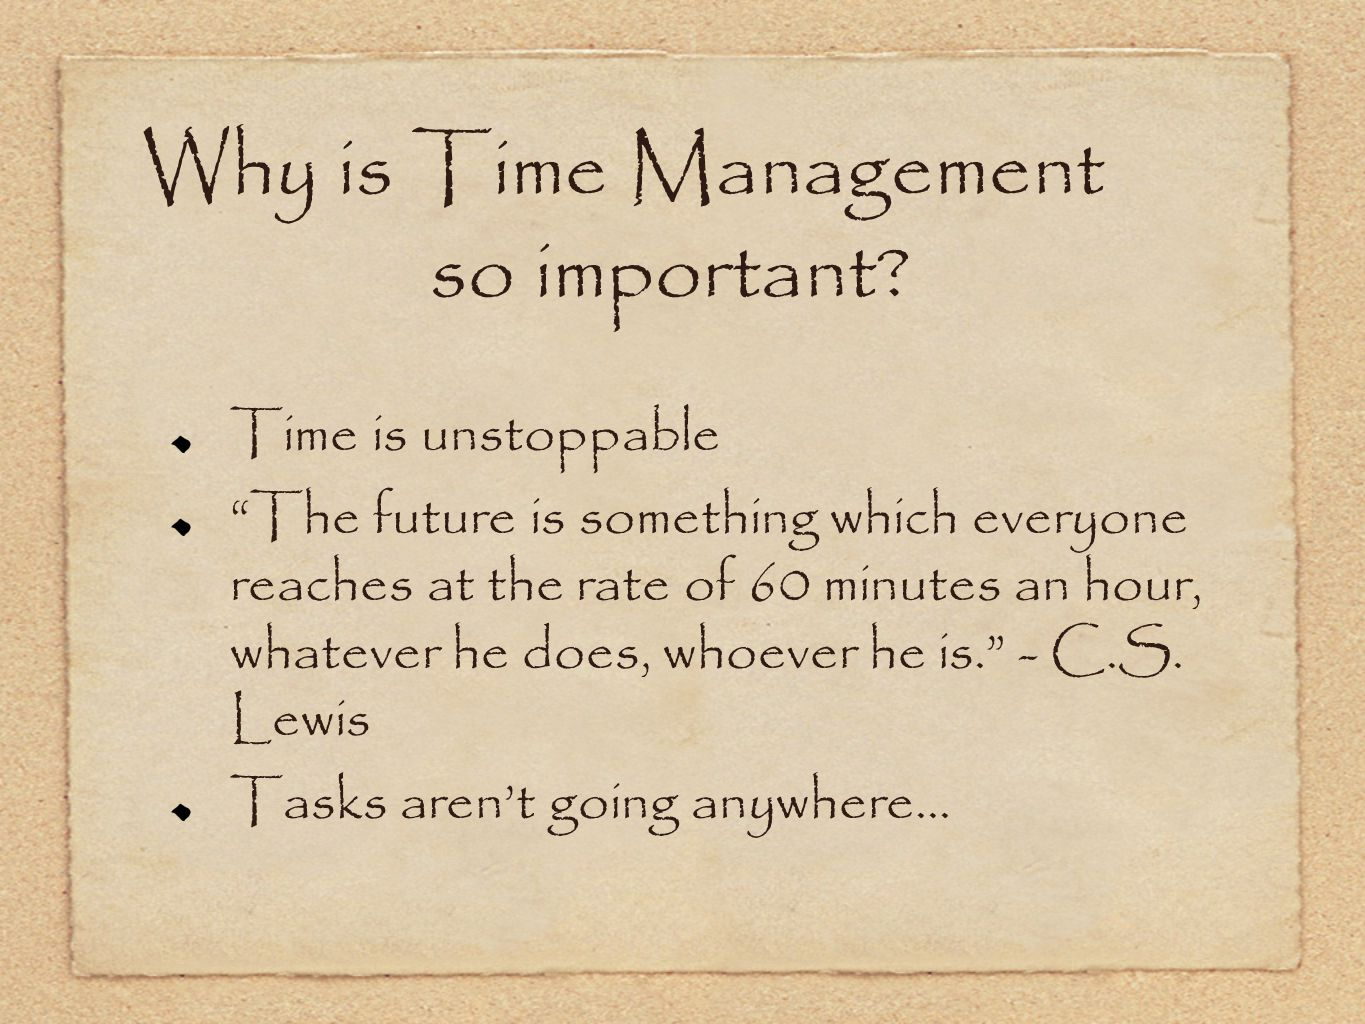 Why is Time Management so important.